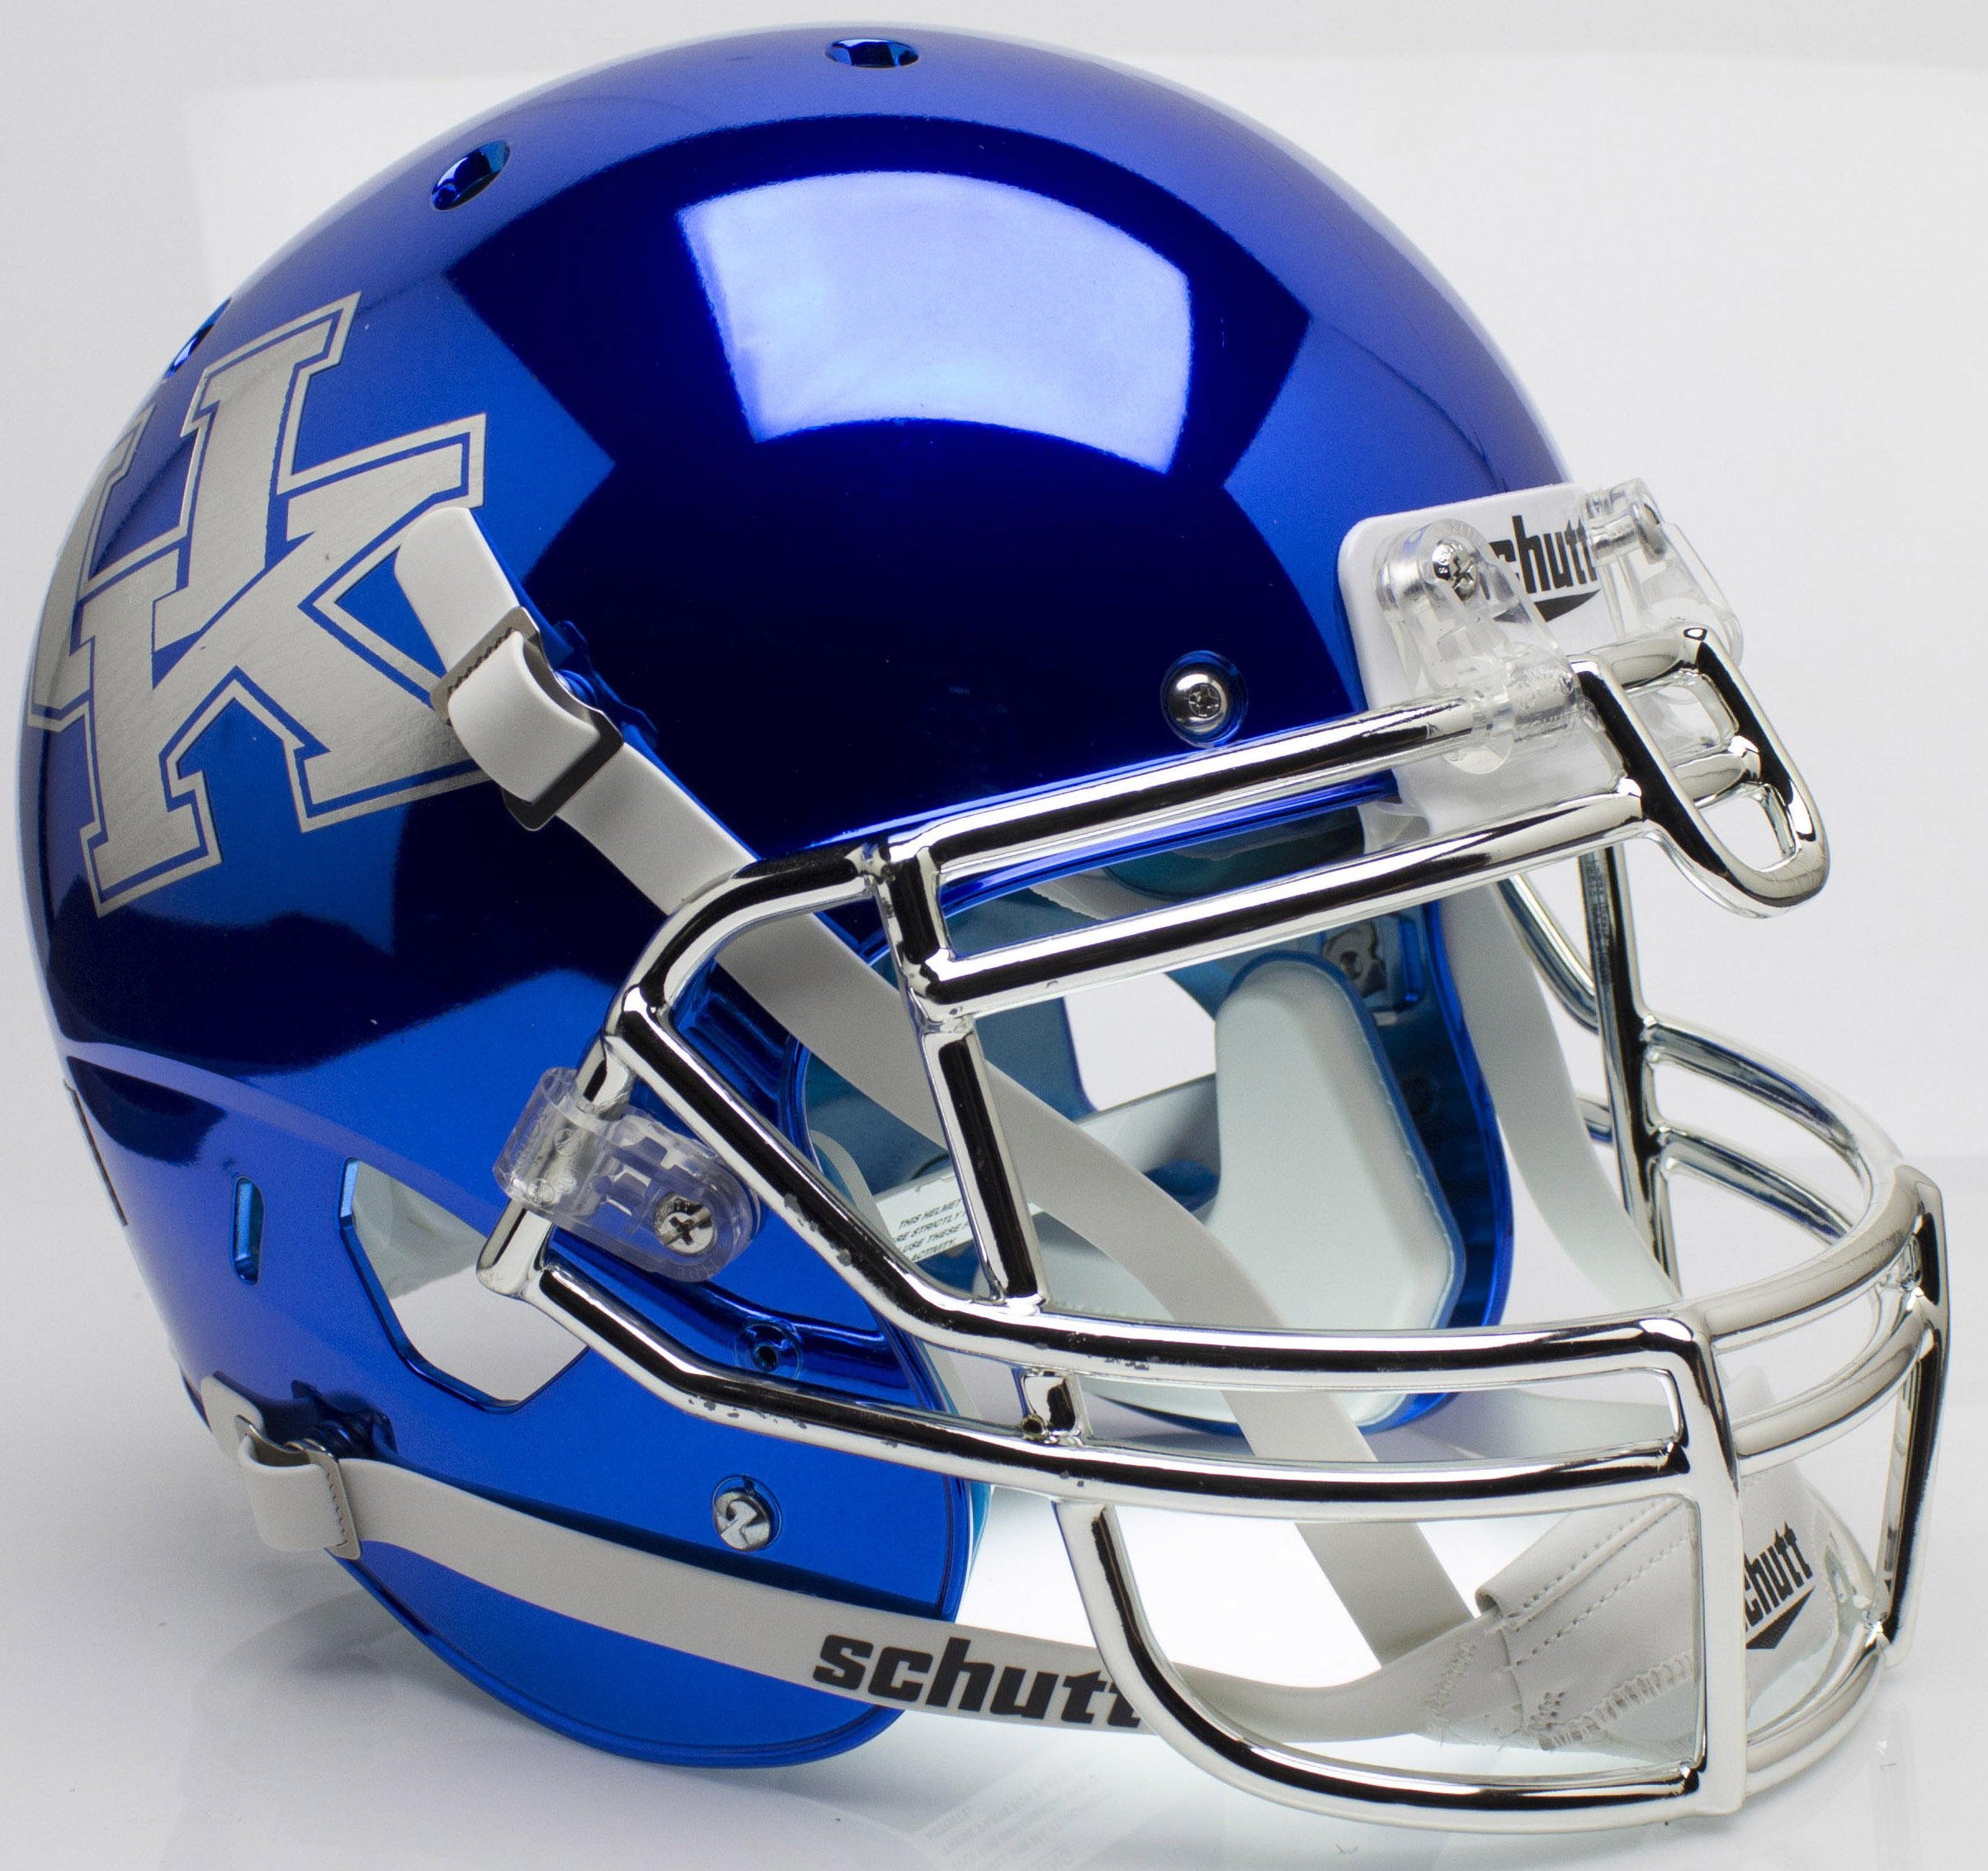 Kentucky Wildcats Authentic College XP Football Helmet Schutt <B>Chrome Blue</B>